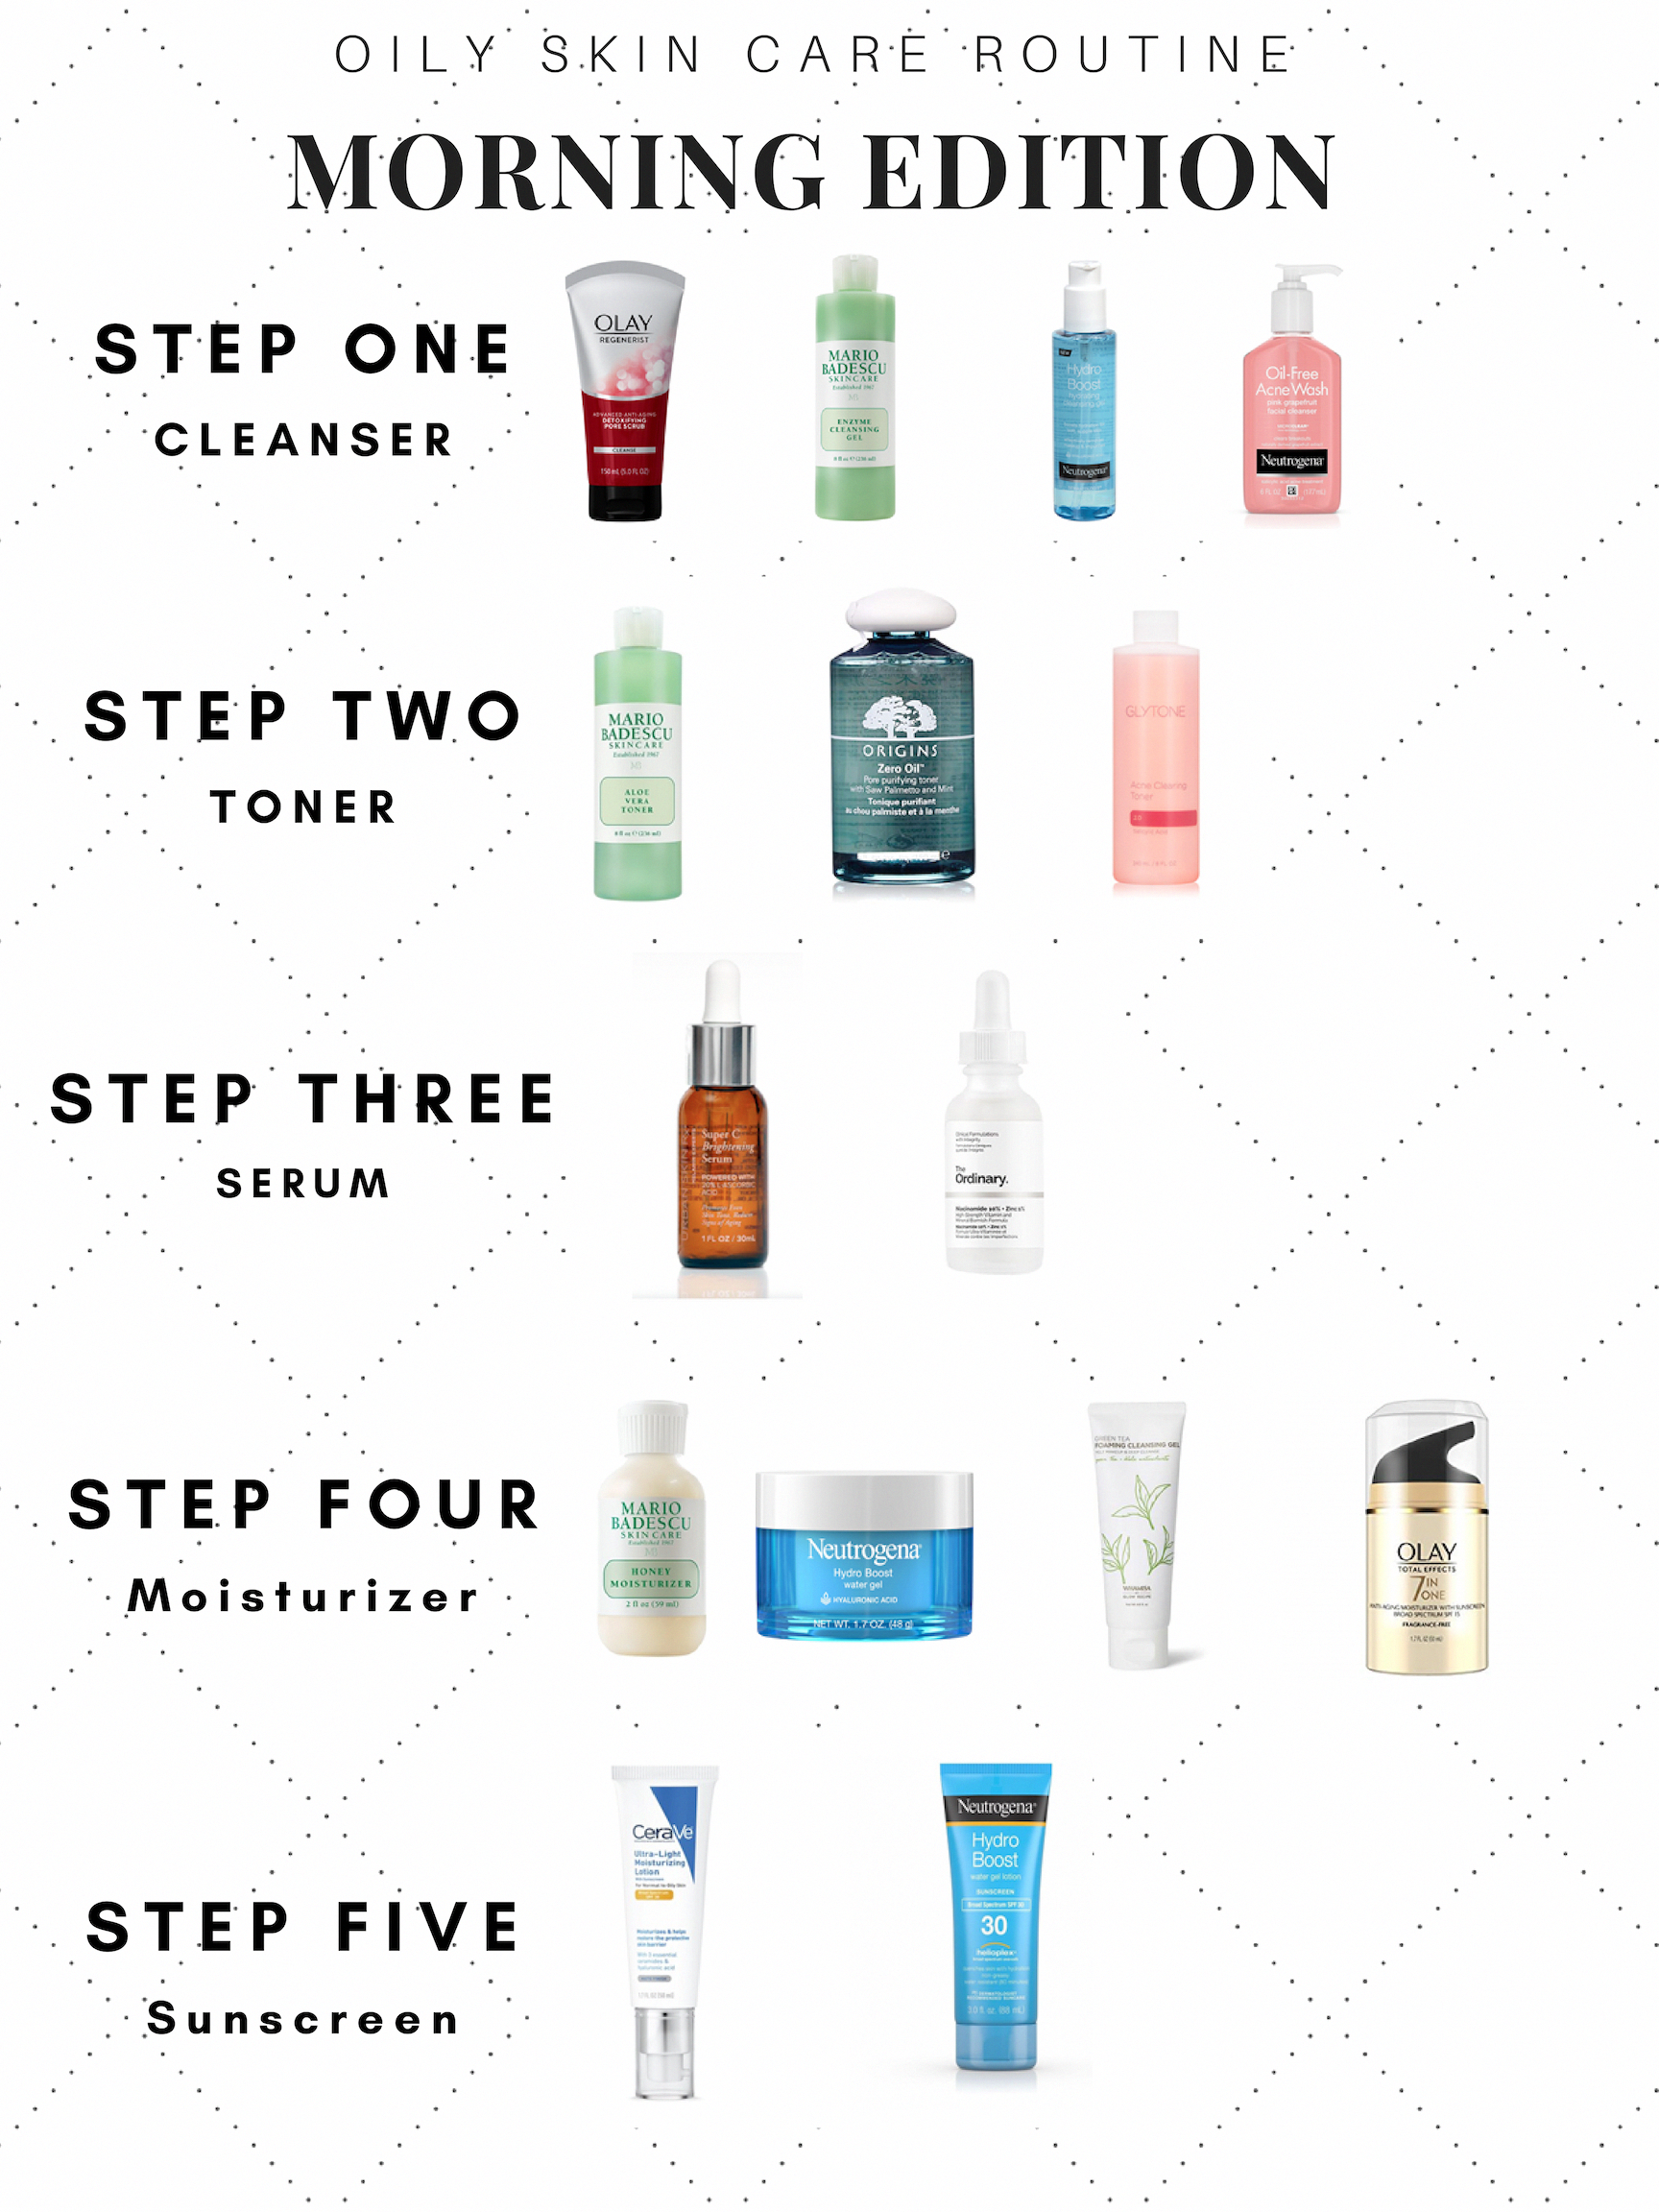 Morning Oily Skin Care Routine Step By Step Skin Care Guide With Affordable Healthy Products Peelofffa Oily Skin Care Routine Oily Skin Care Skin Care Guide